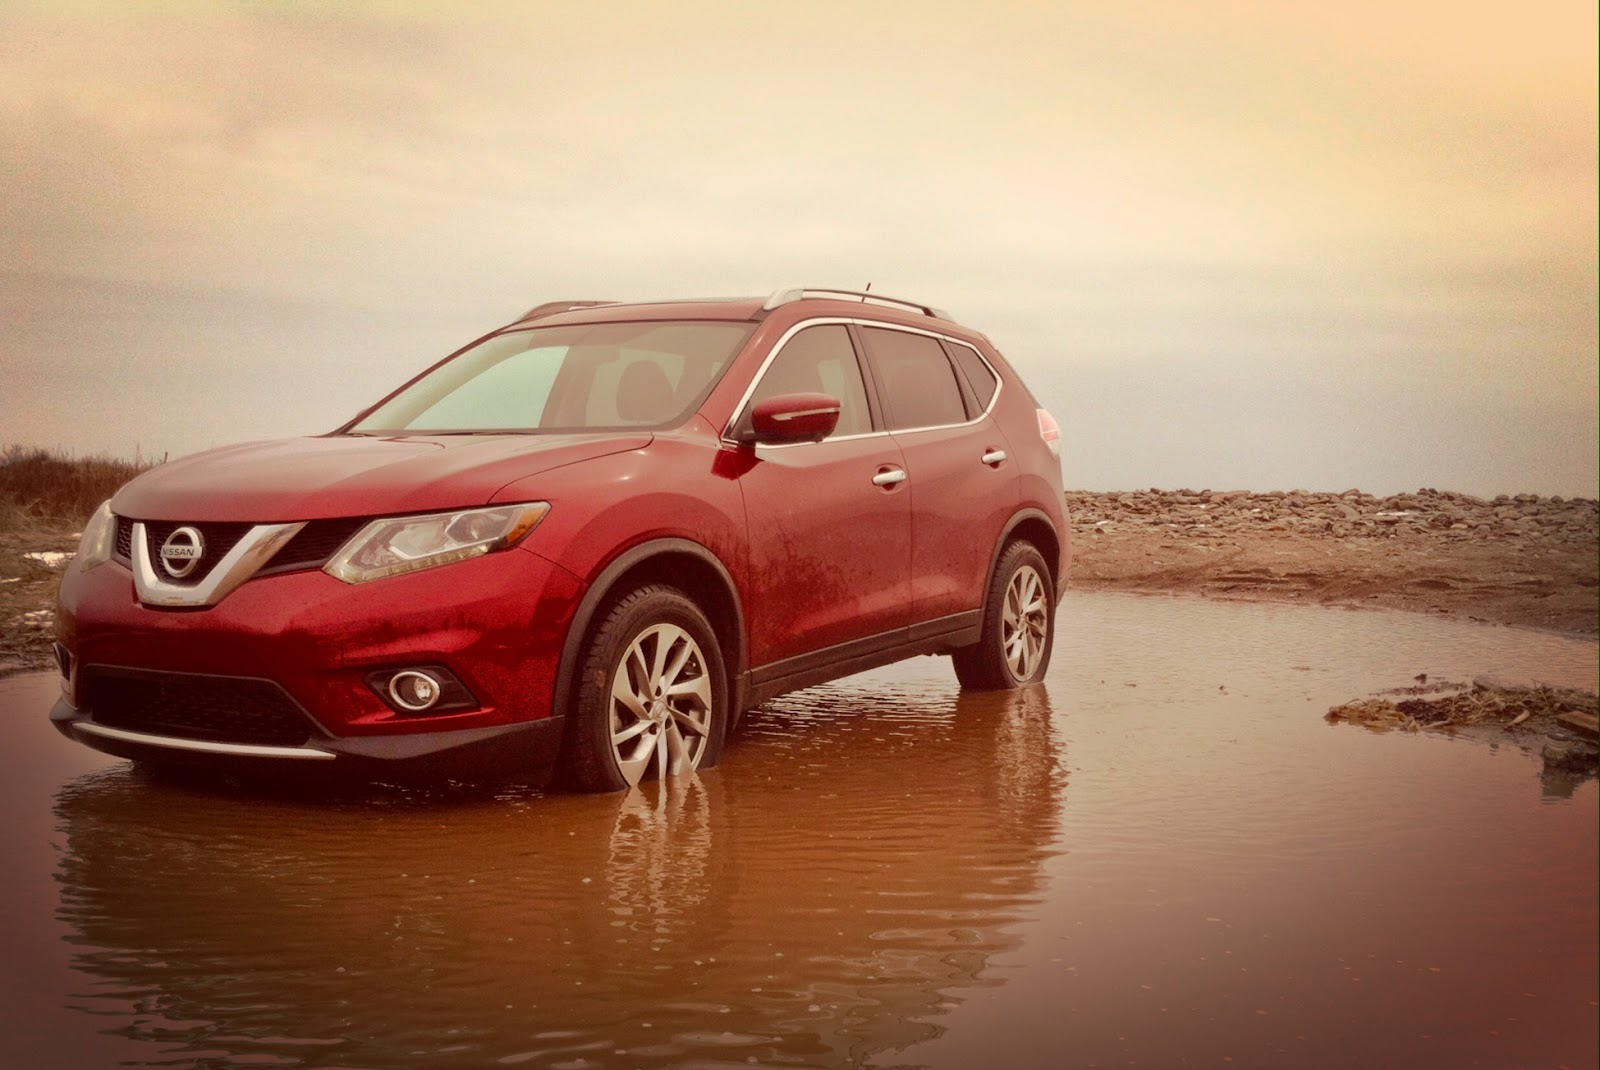 2014 Nissan Rogue red